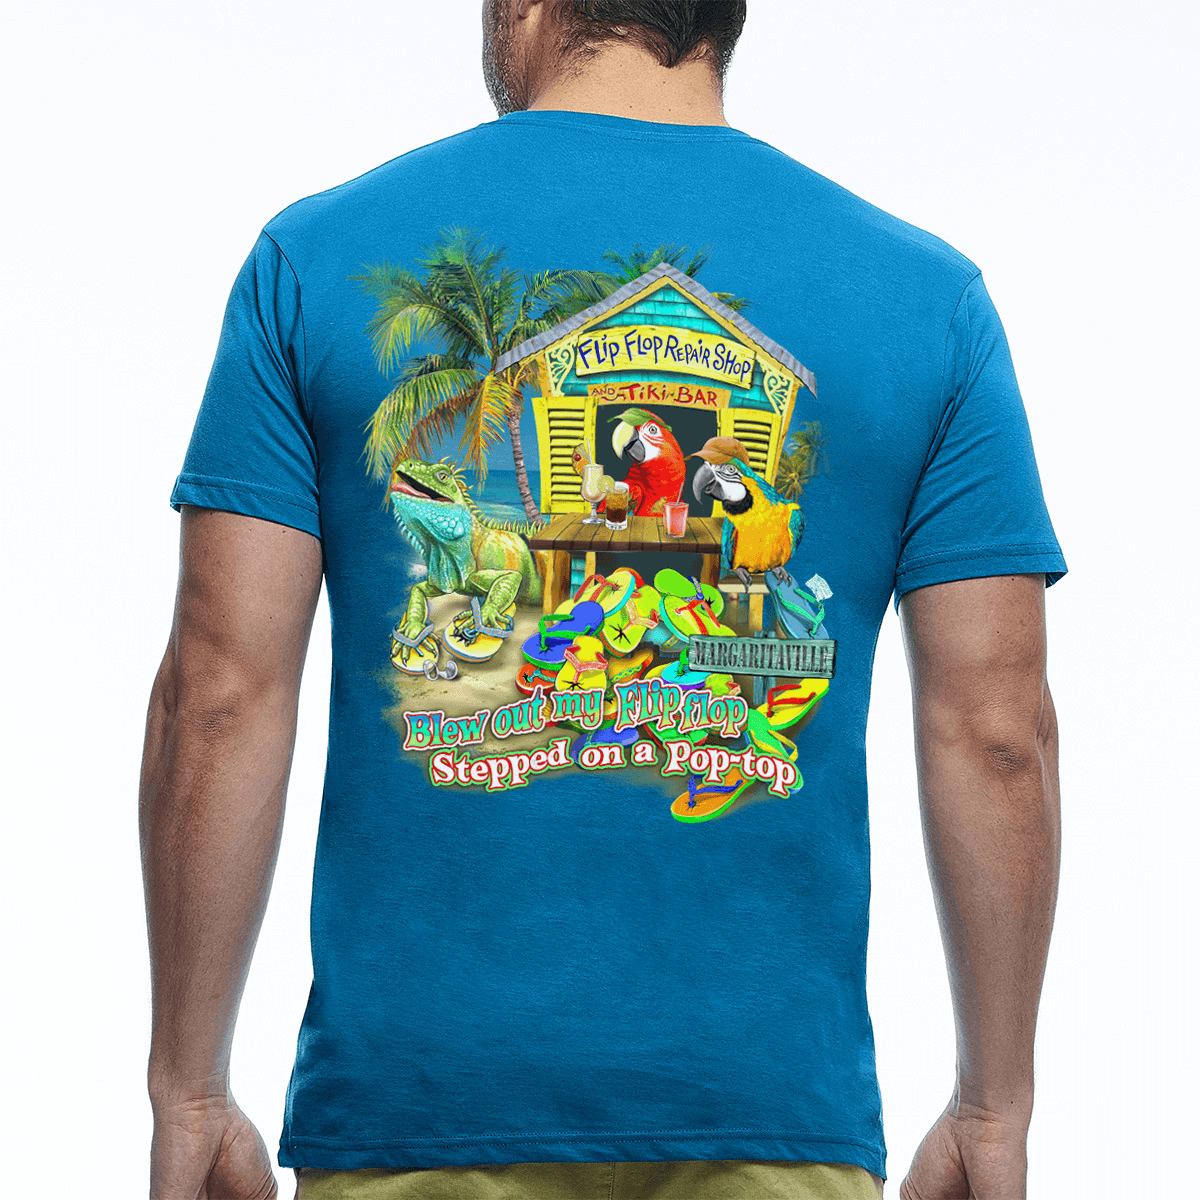 Flip Flop Repair T Shirt Margaritaville Apparel Store